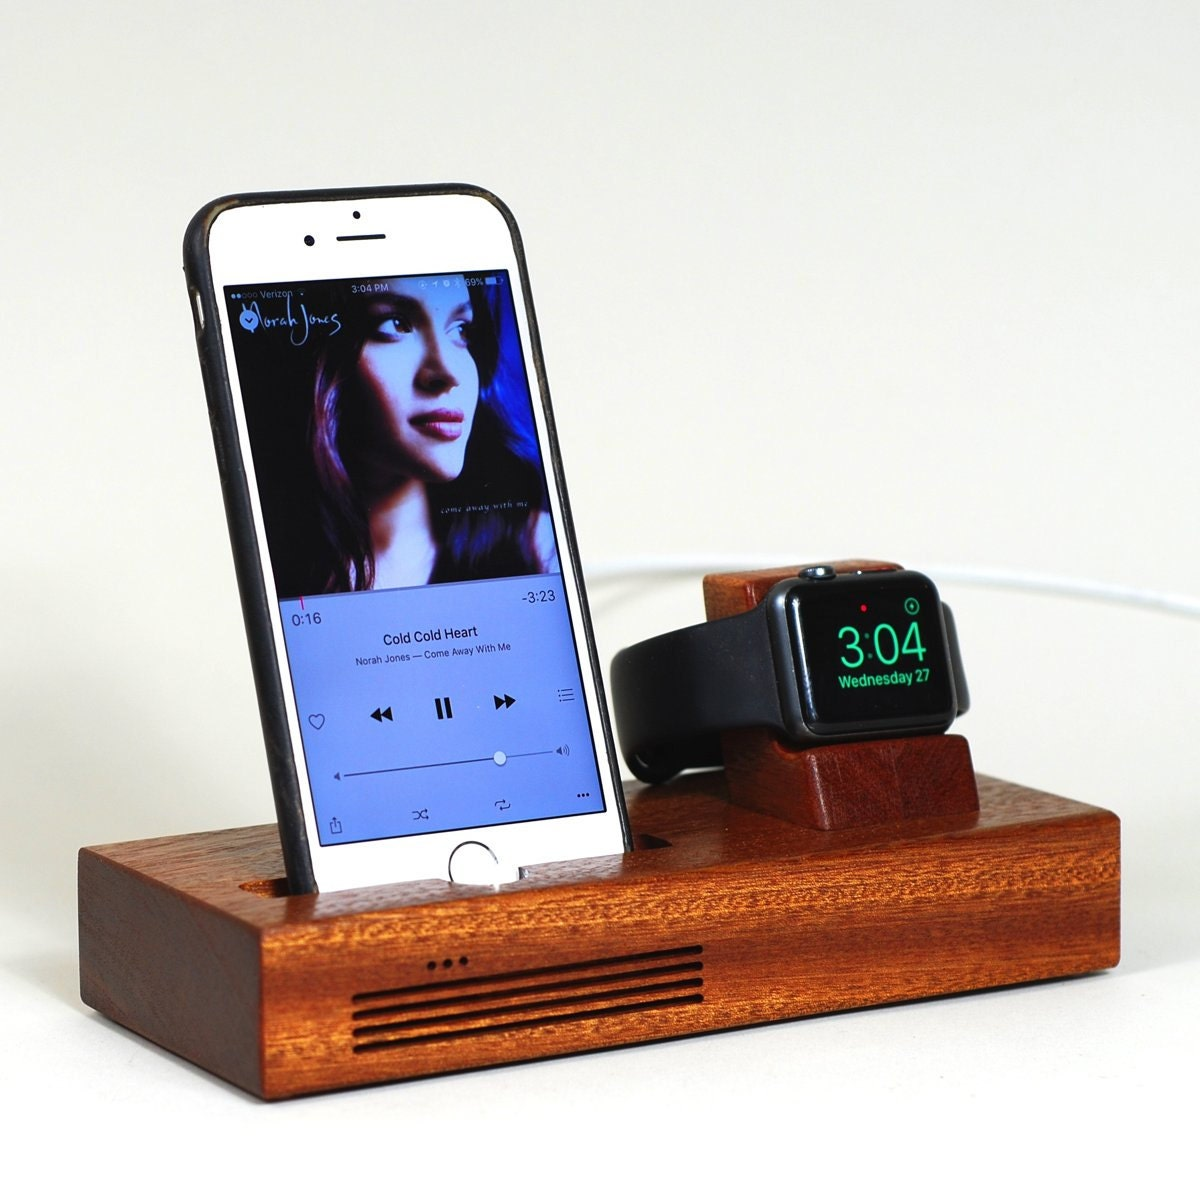 iphone apple watch docking station the concert tandem dock. Black Bedroom Furniture Sets. Home Design Ideas